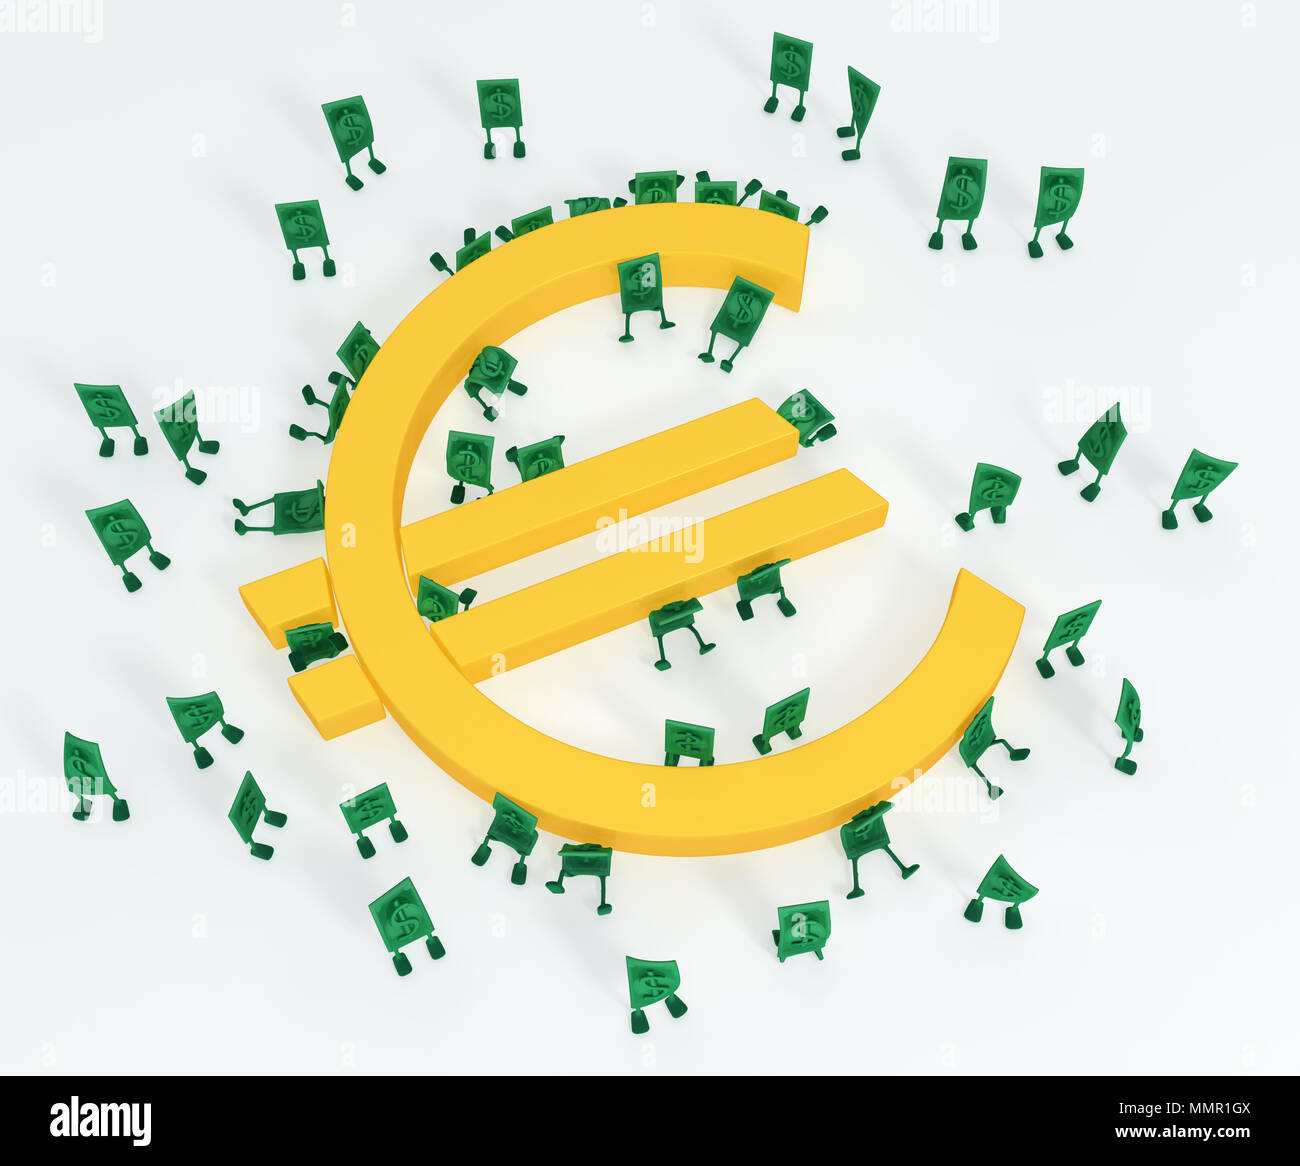 Dollar Money Symbol Cartoon Characters With Euro 3d Illustration